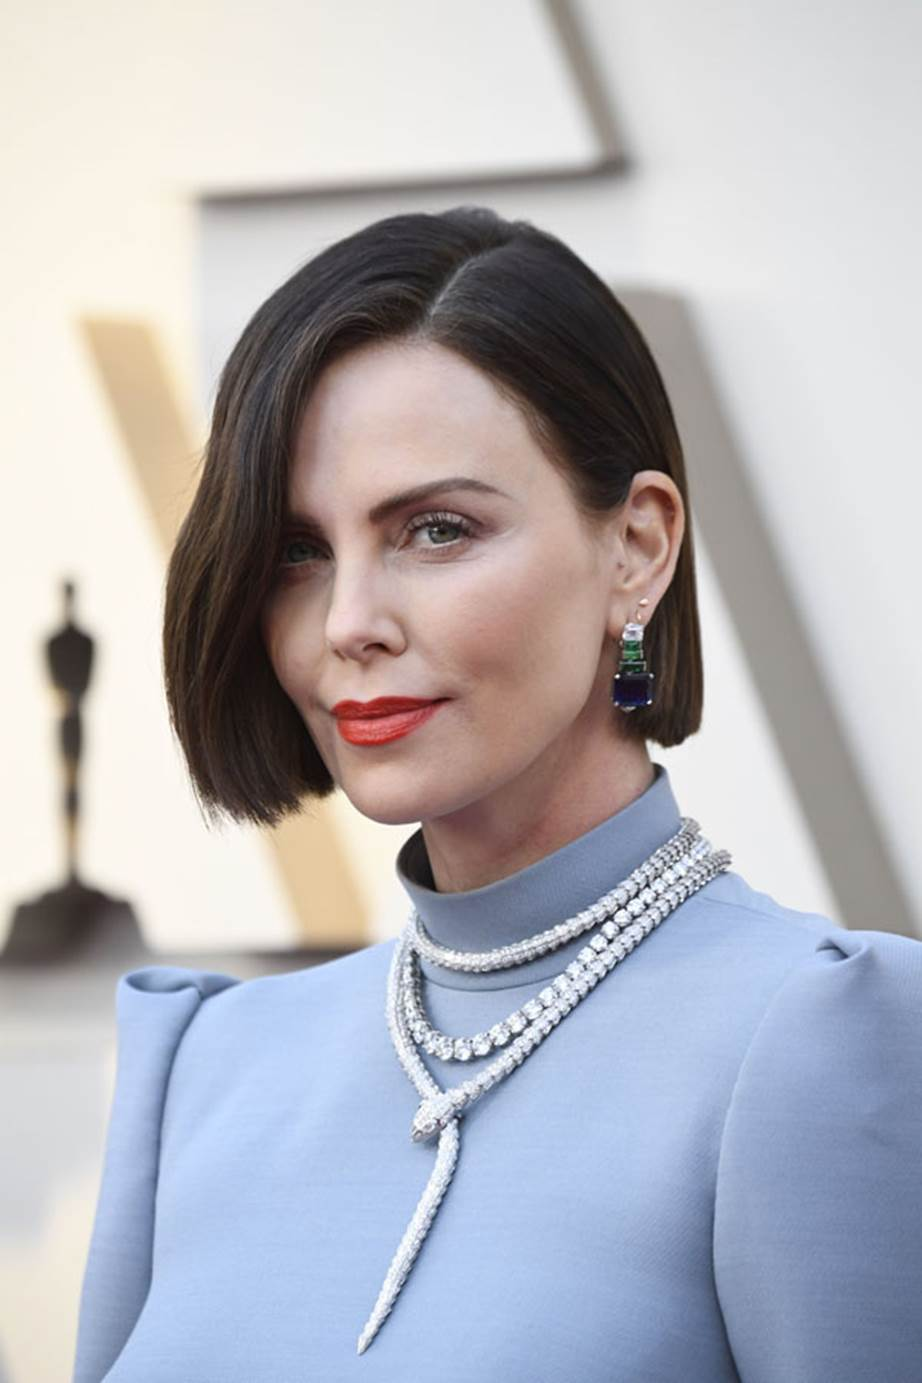 https://d3lp4xedbqa8a5.cloudfront.net/s3/digital-cougar-assets/hb/2019/02/25/1551065978047_Charlize-Theron-Oscars.jpg?width=922&height=&mode=crop&scale=both&anchor=topcenter&quality=70